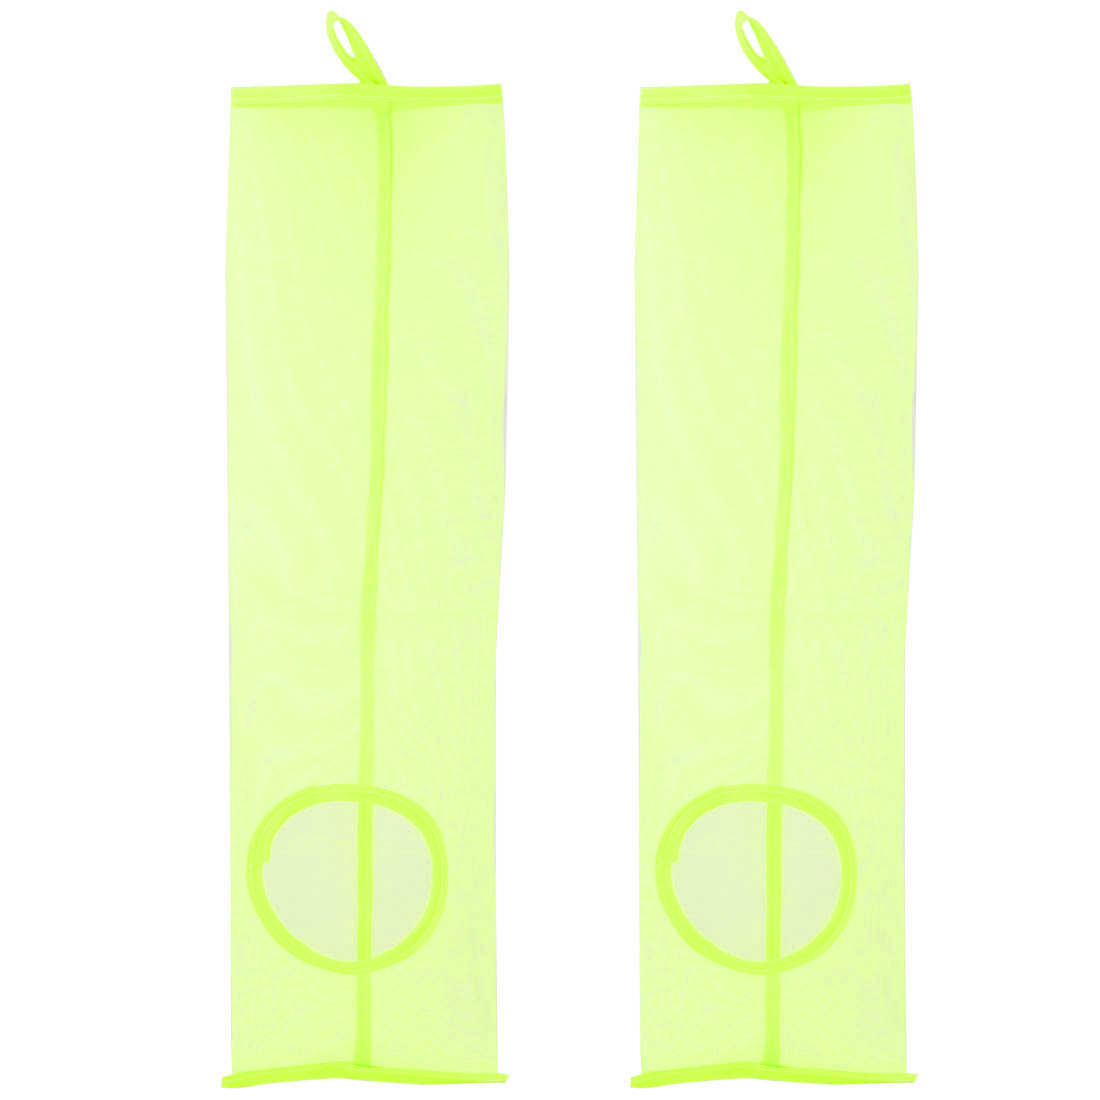 Home Bathroom PVC Mesh Wall Hanging Grocery Bag Holder Storage Container Green 2pcs